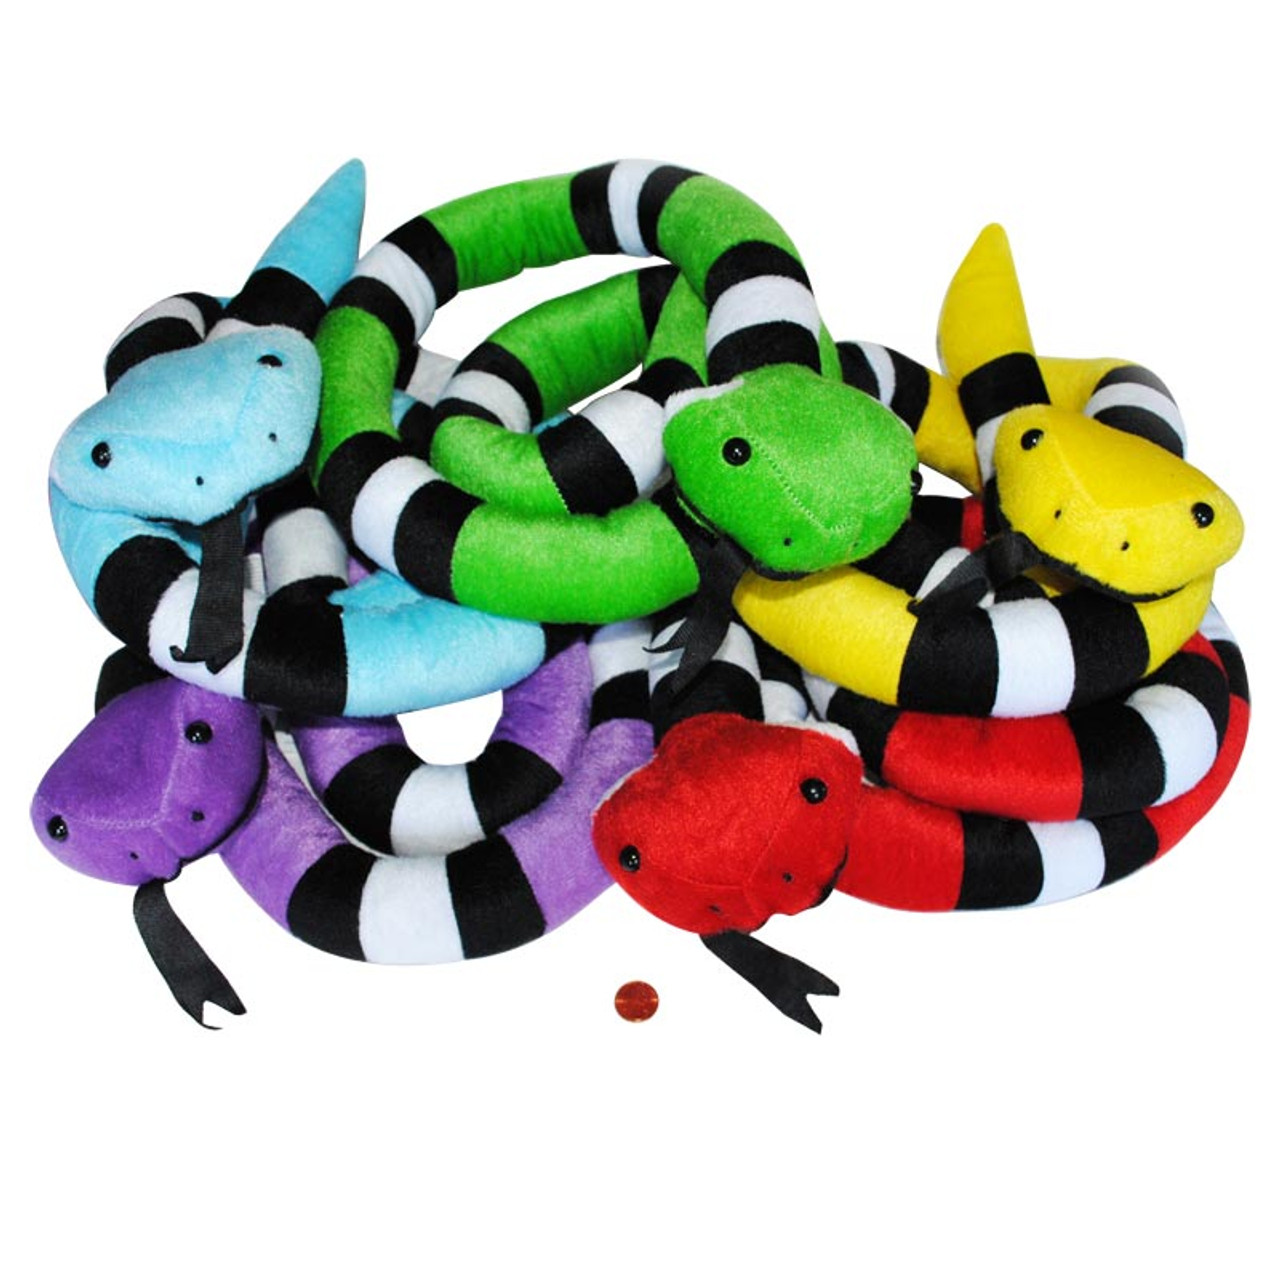 Colorful Stuffed Snakes Wholesale Stuffed Animals